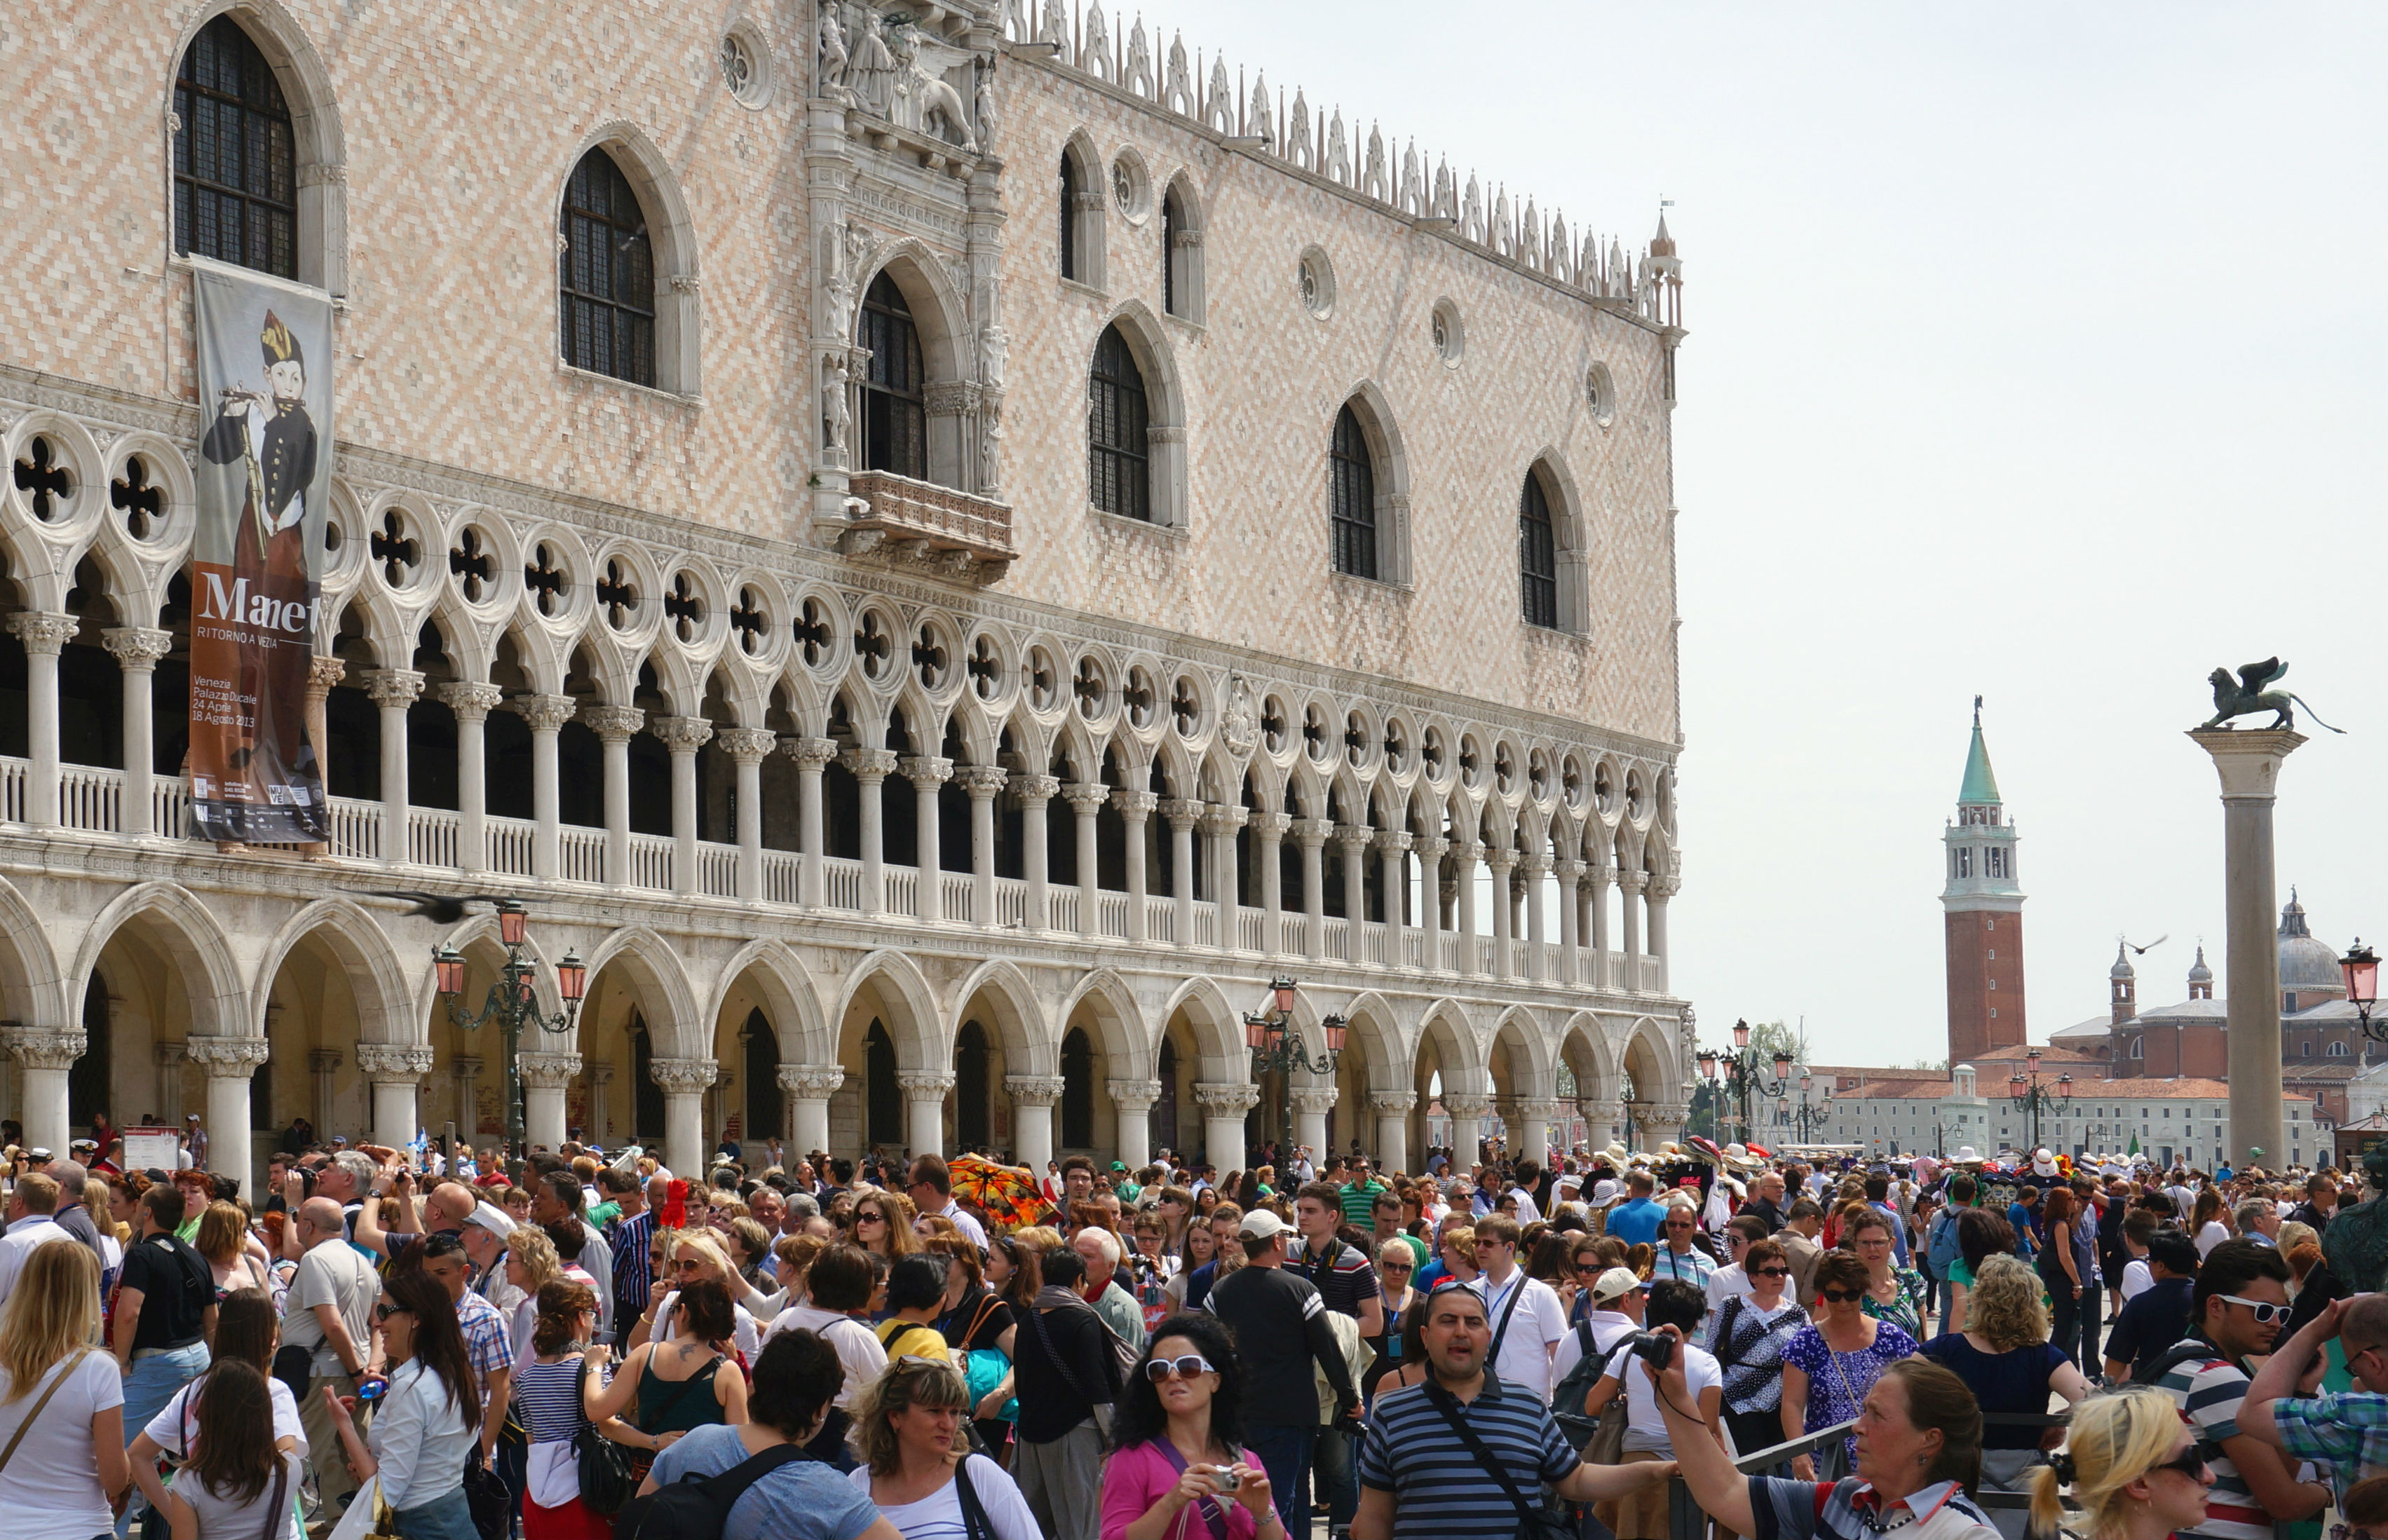 Tourist tax in Europe: what you will pay in Spain, Italy and